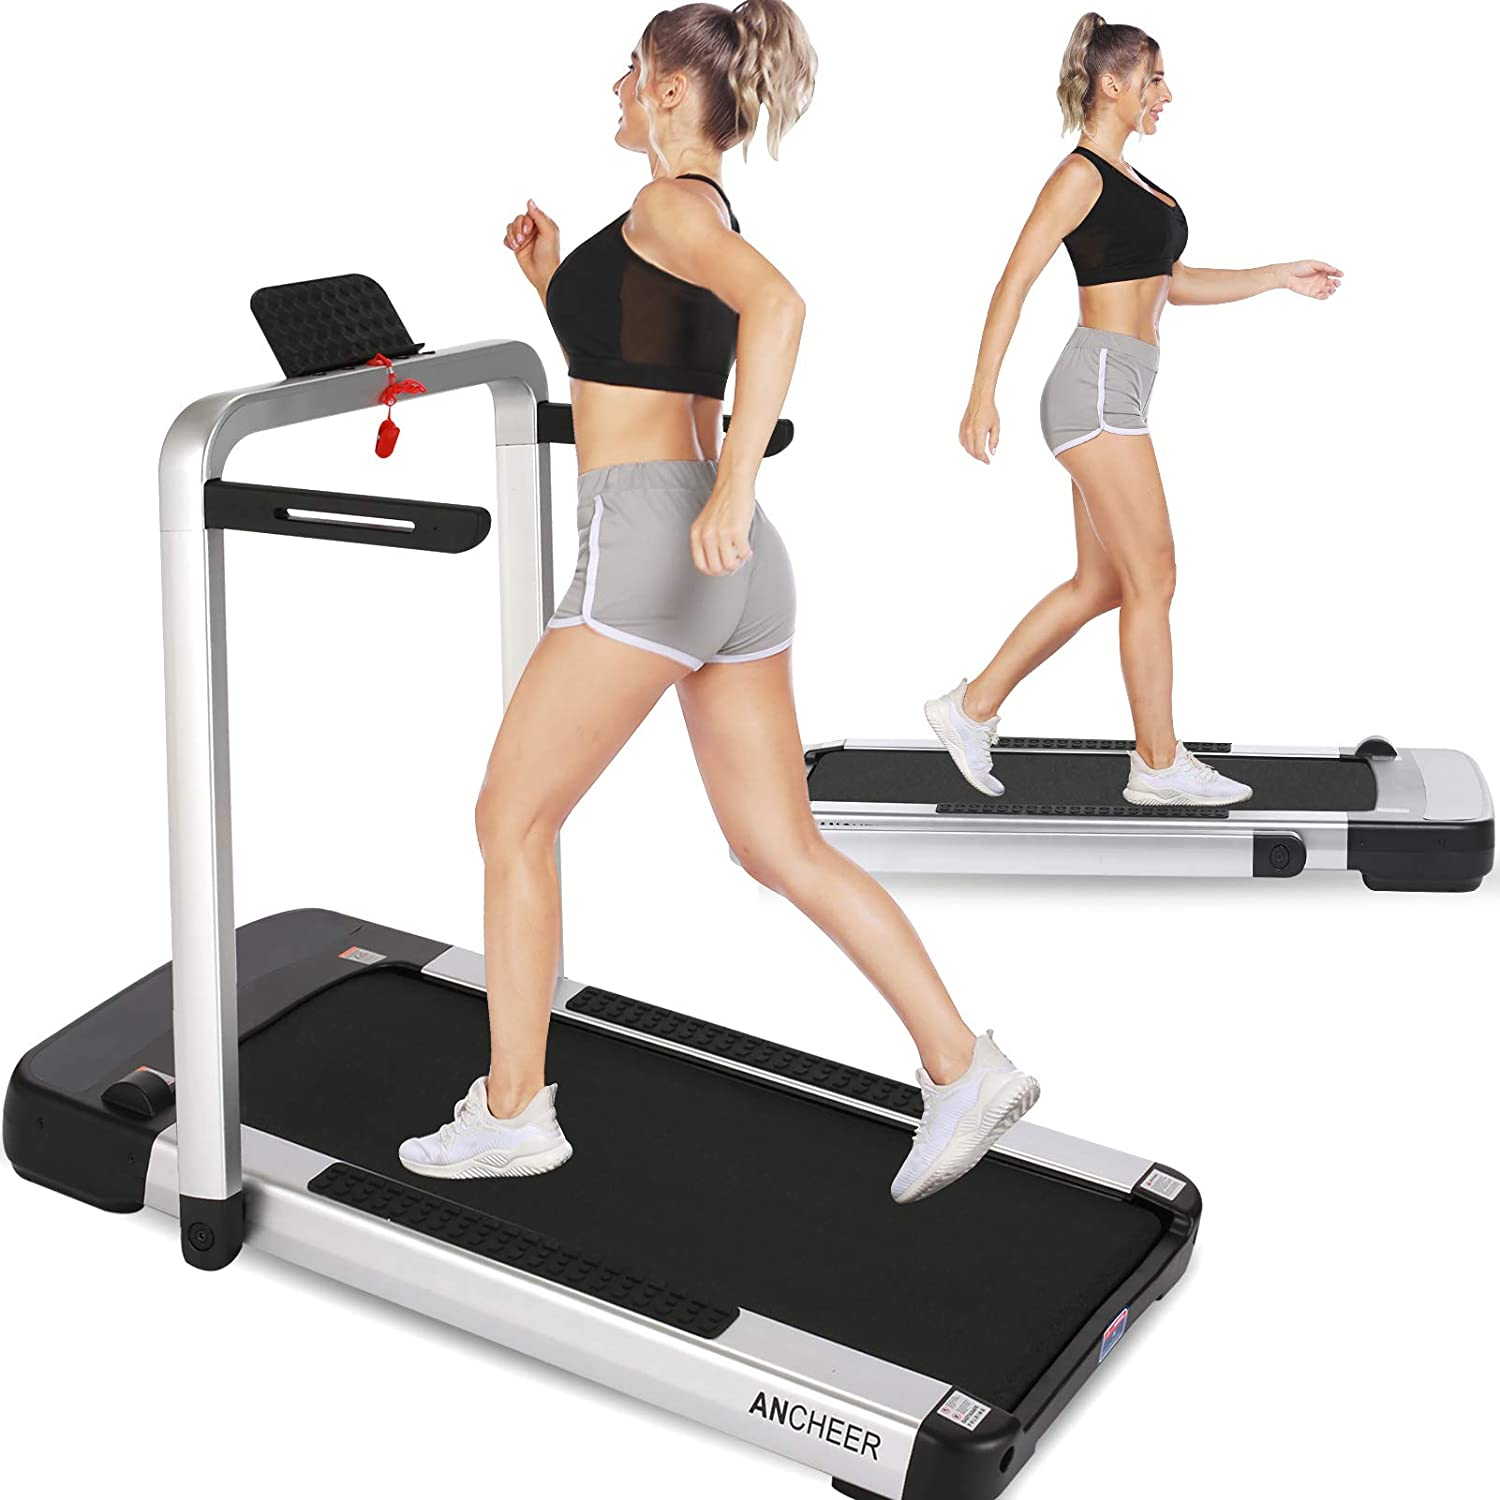 ANCHEER 2 in 1 Folding Treadmill, Portable Under Desk Treadmill for Home, Electric Compact Running & Walking Machine with App & Remote Control, LCD Display, No Assembly